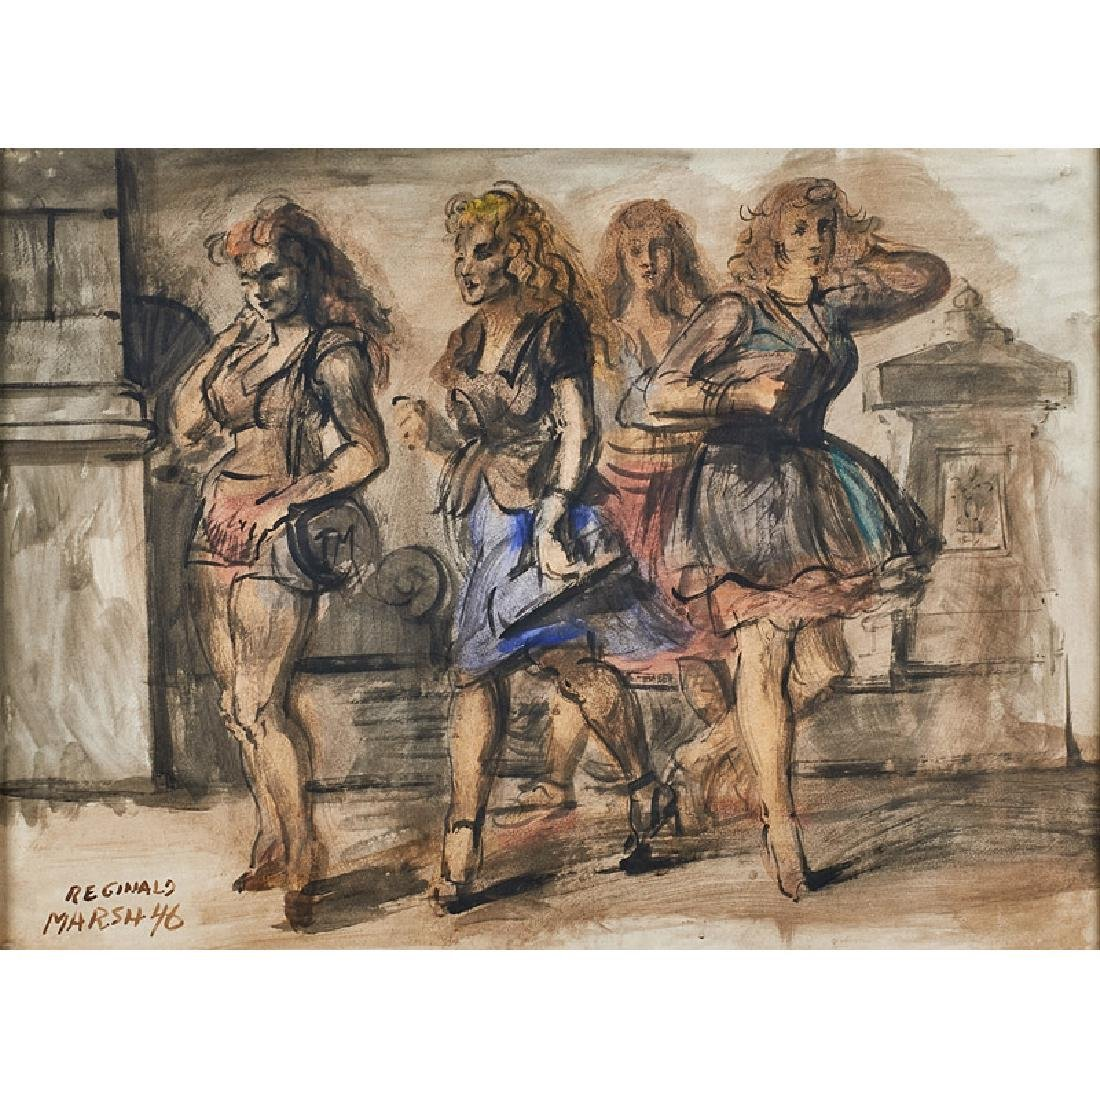 Reginald Marsh (American, 1898-1954)